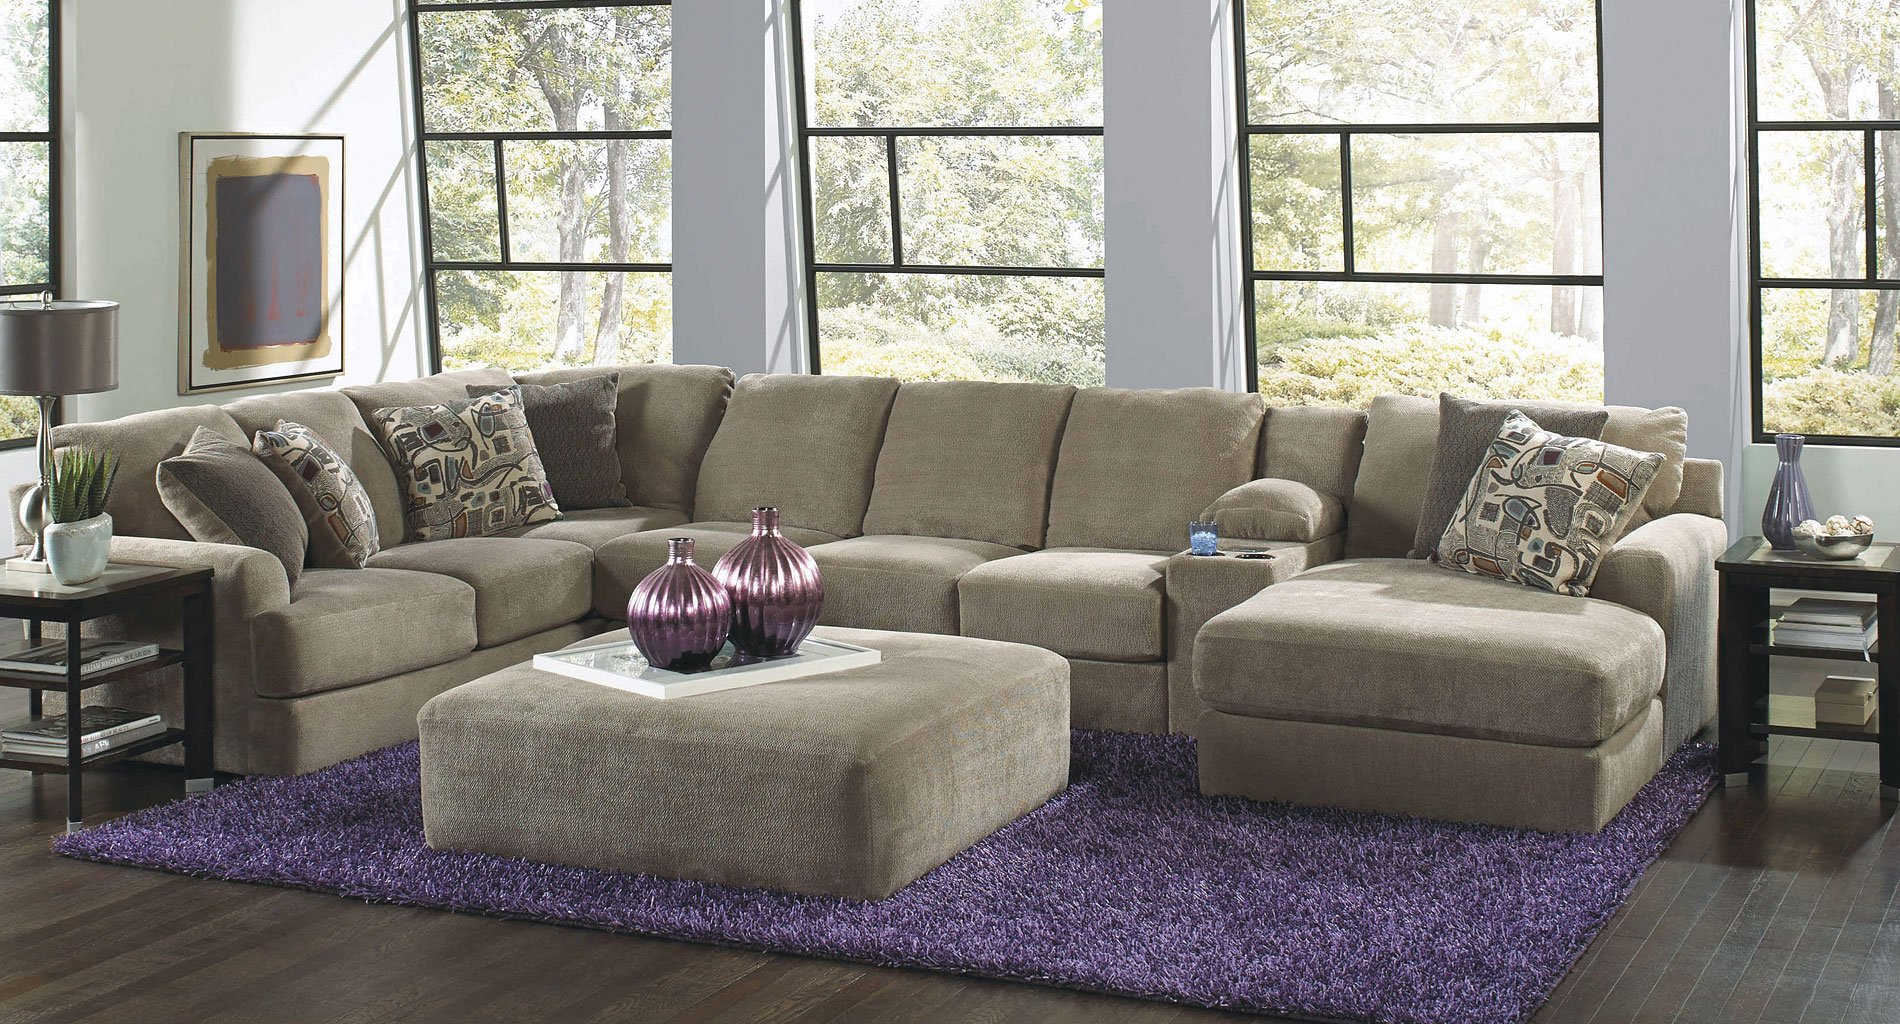 malibu modular sectional w chaise taupe living room furniture living. Black Bedroom Furniture Sets. Home Design Ideas